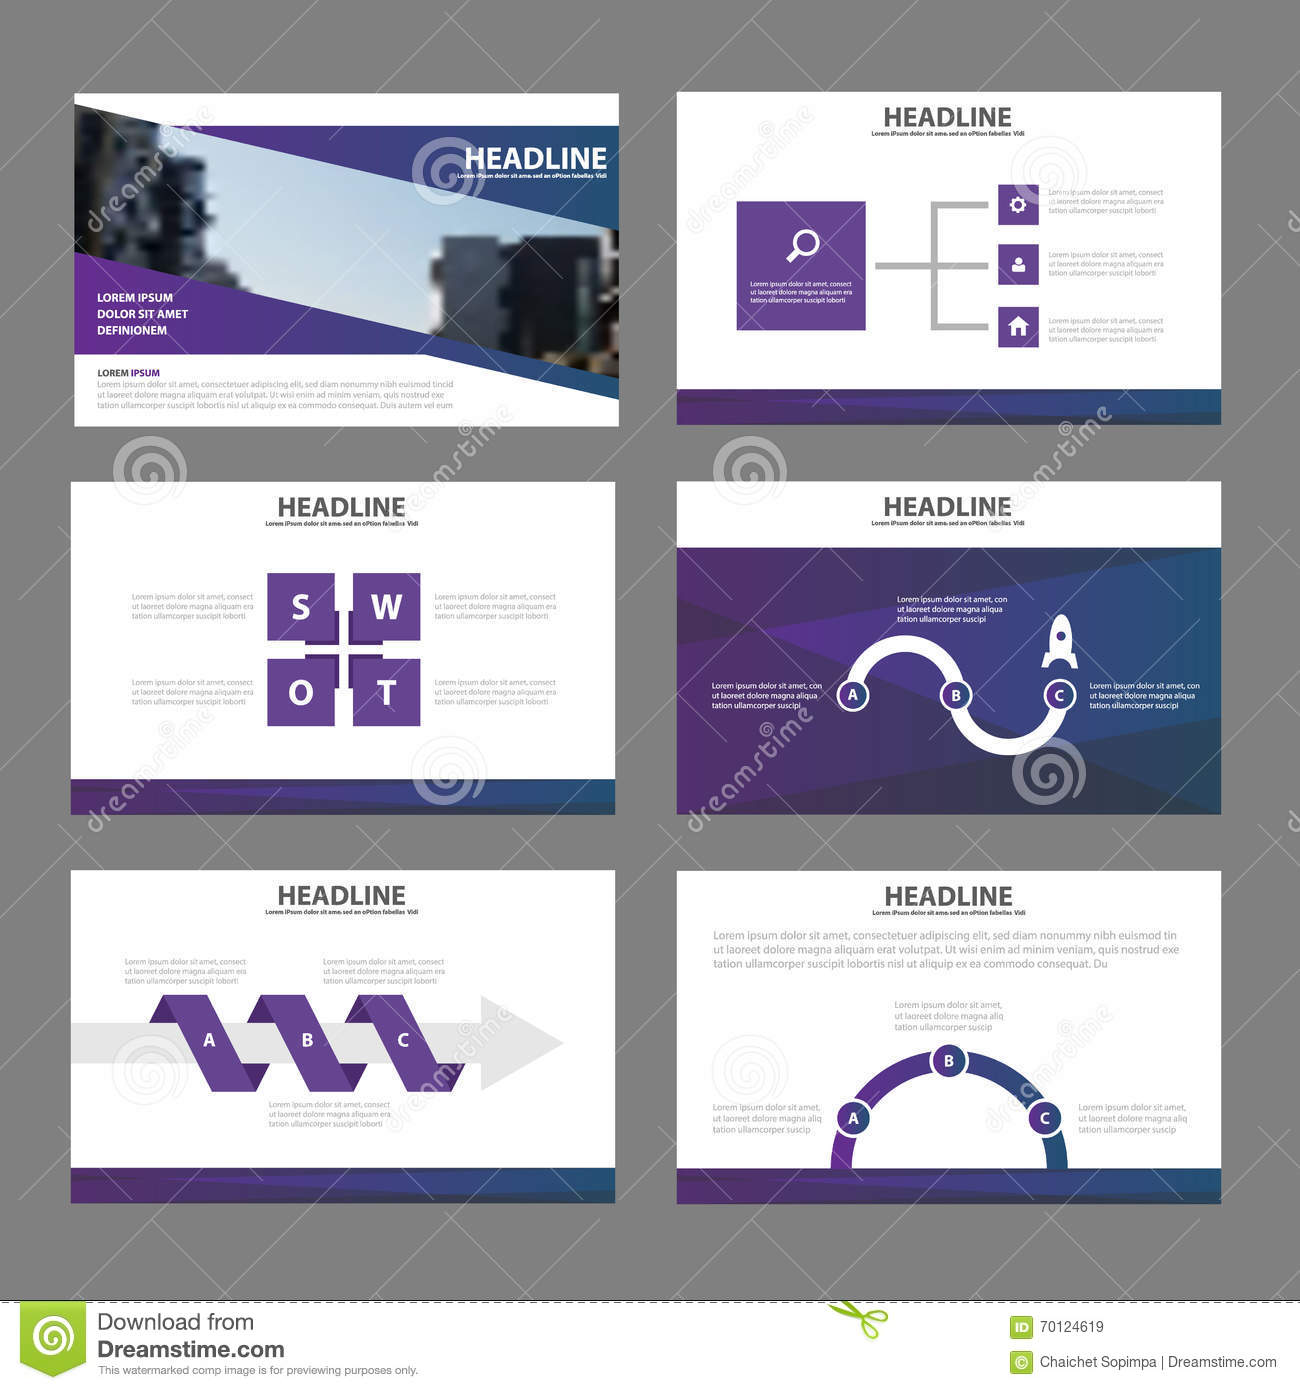 elegance purple presentation templates infographic elements flat, Templates